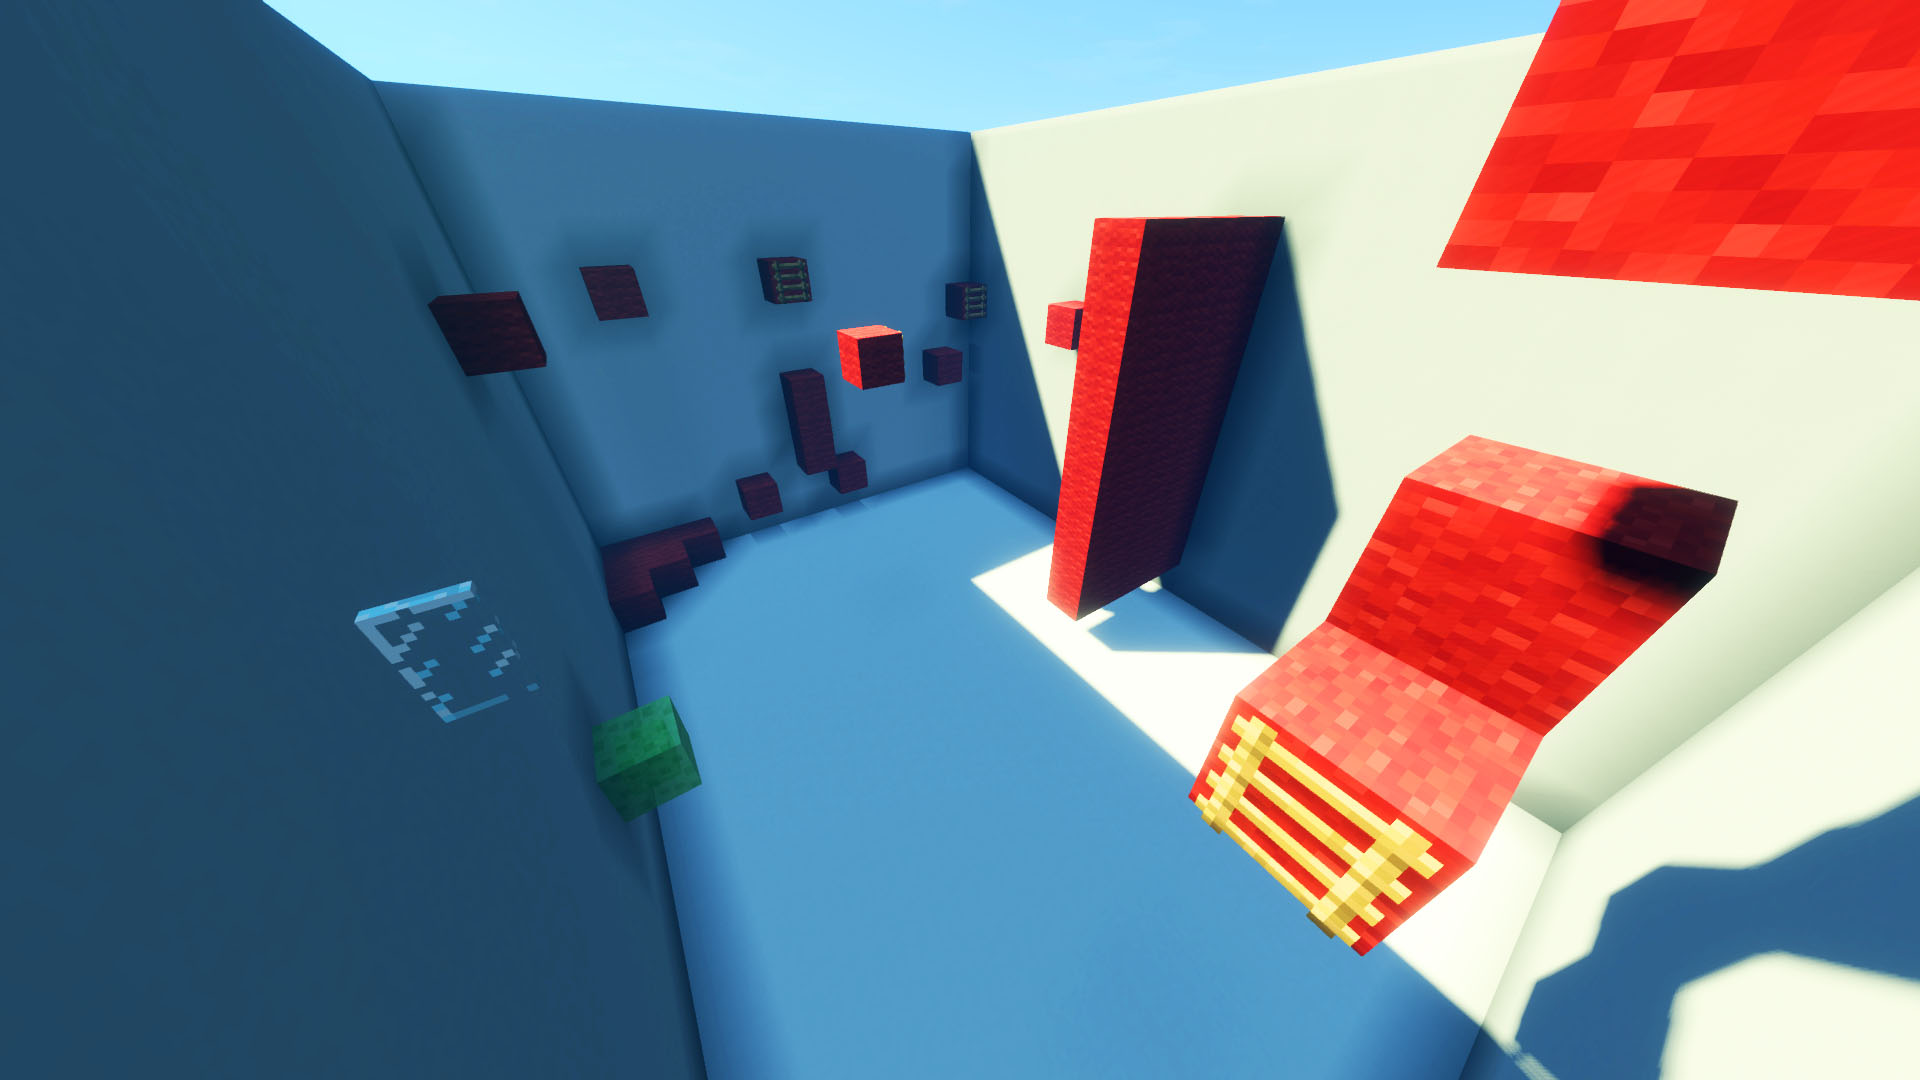 Superhard-Parkour-Mapa-